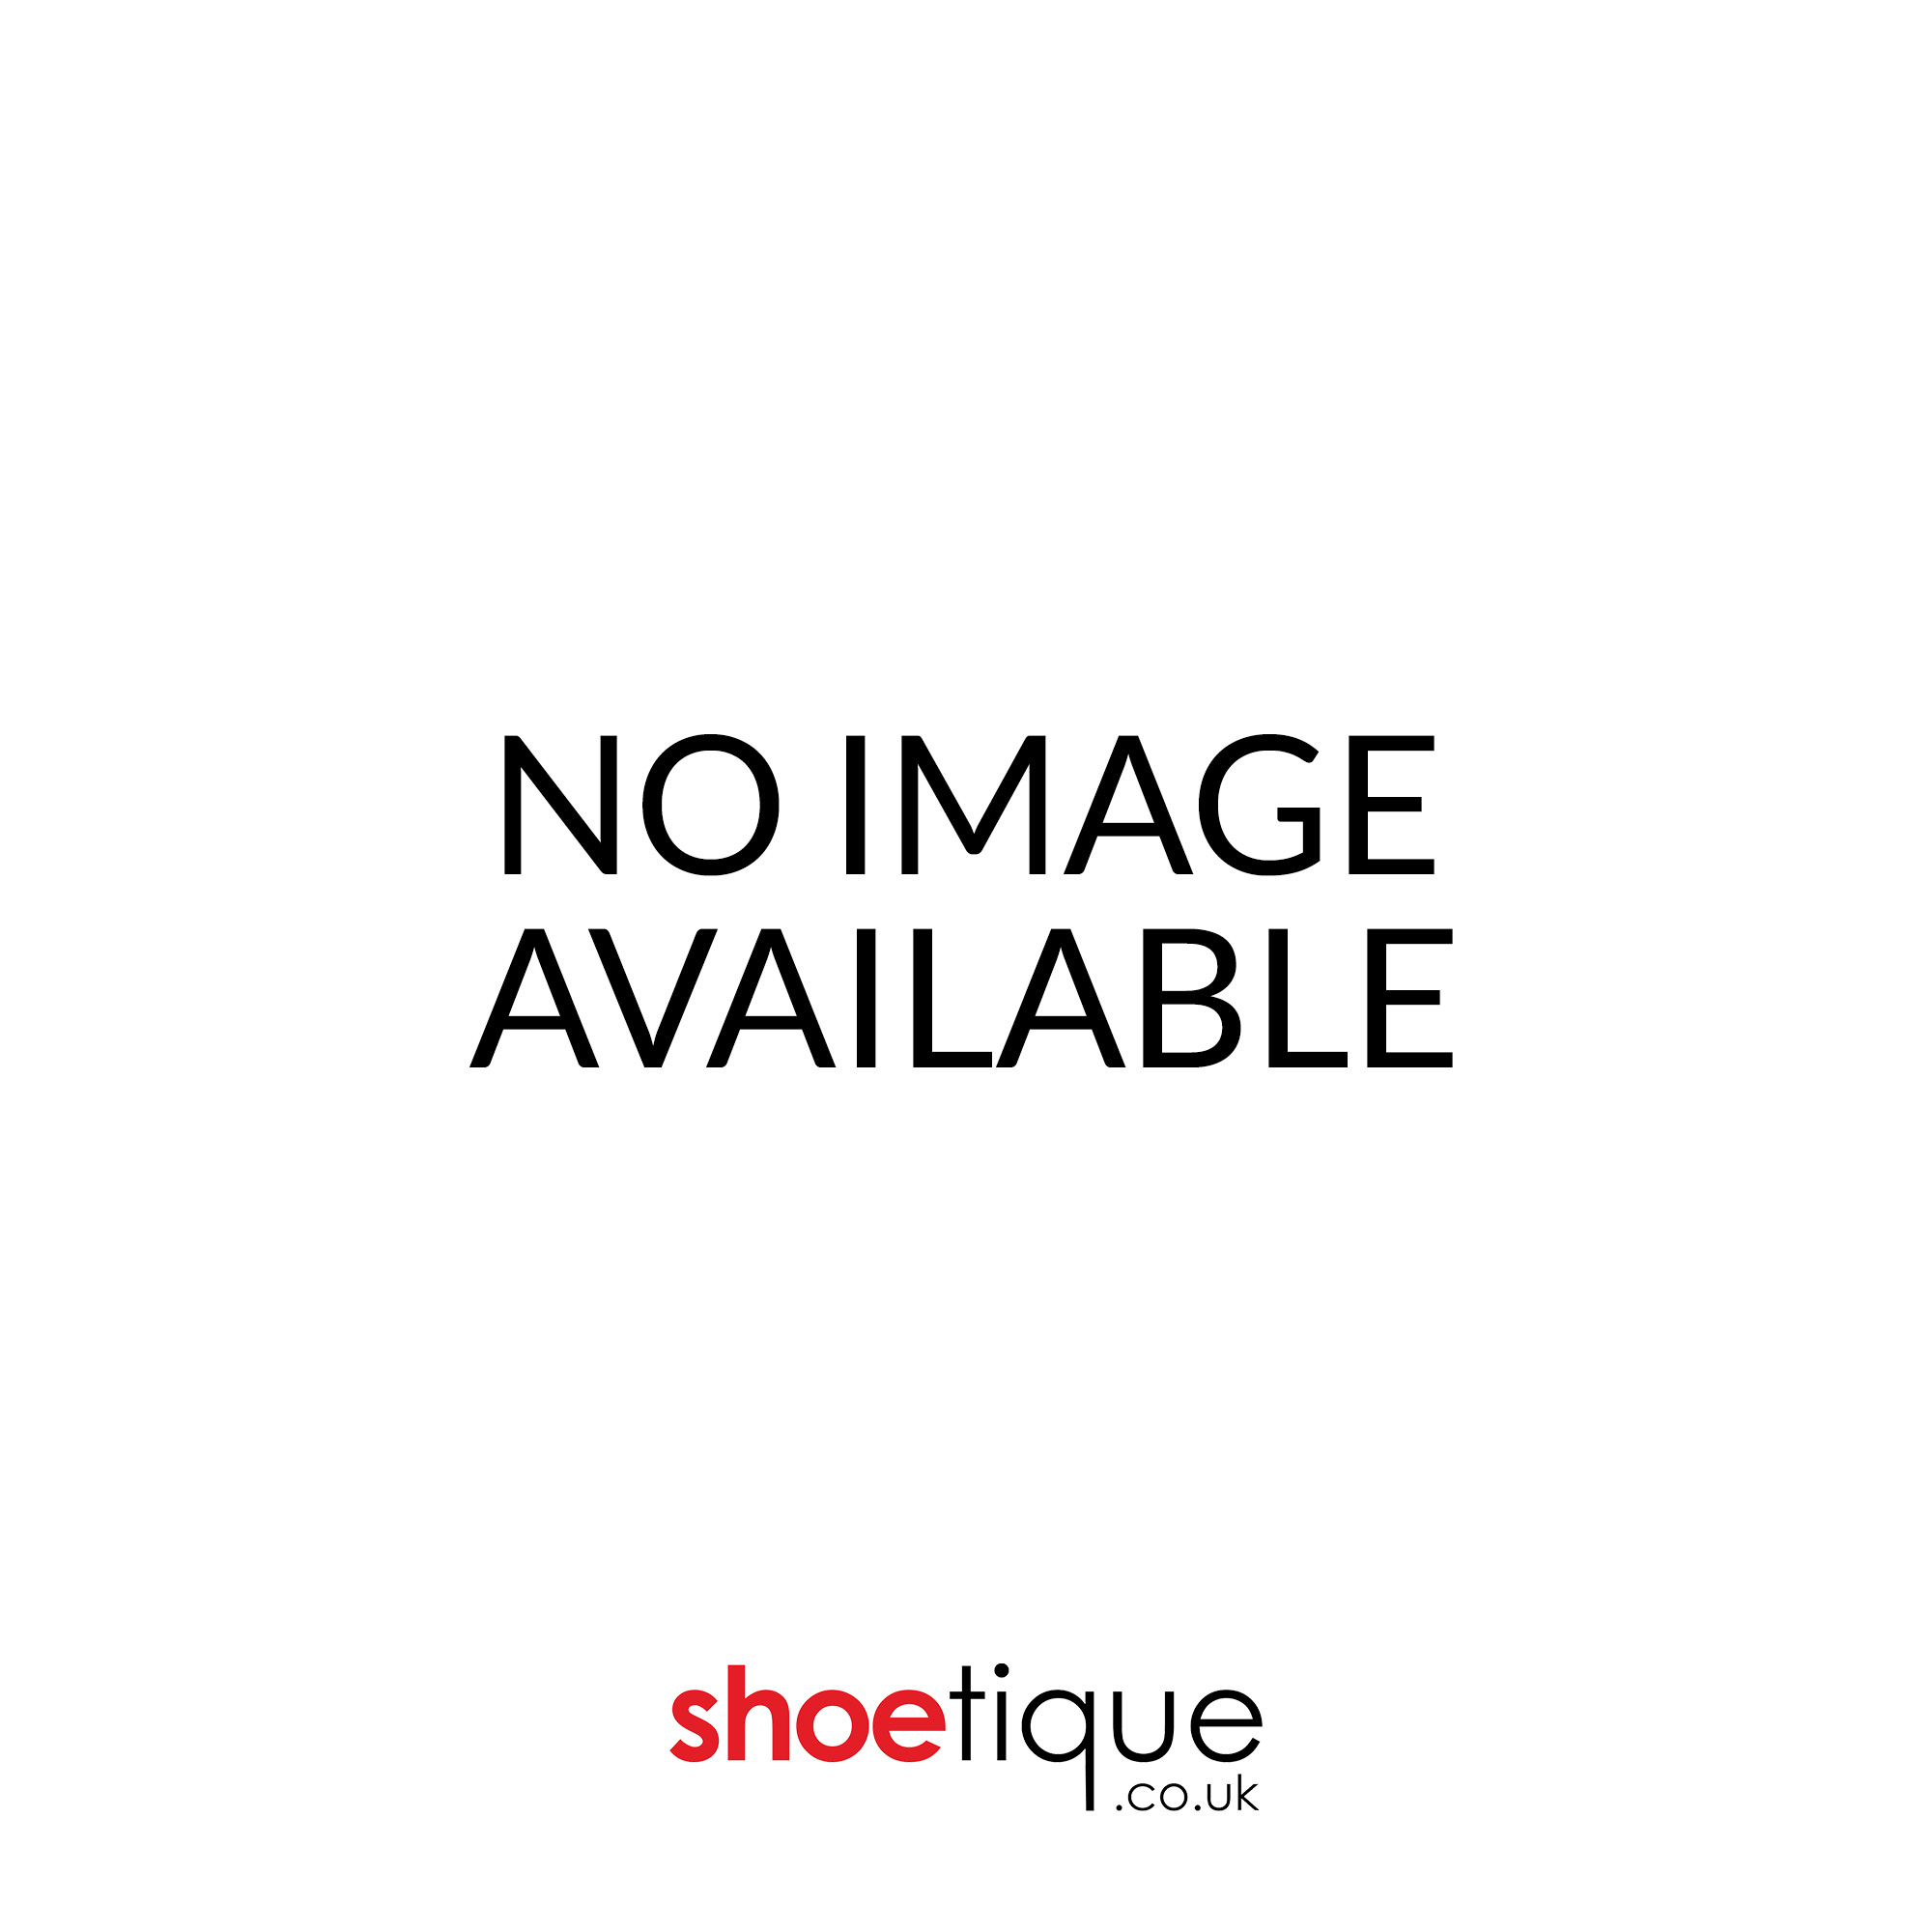 clarks womens shoes hamble oak navy patent with free delivery. Black Bedroom Furniture Sets. Home Design Ideas